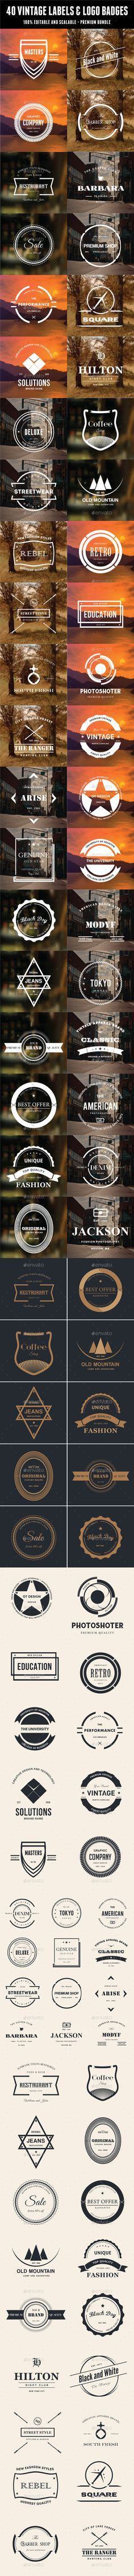 40 Vintage Labels & Logo Badges Bundle #design Download: http://graphicriver.net/item/40-vintage-labels-logo-badges-bundle/12287168?ref=ksioks